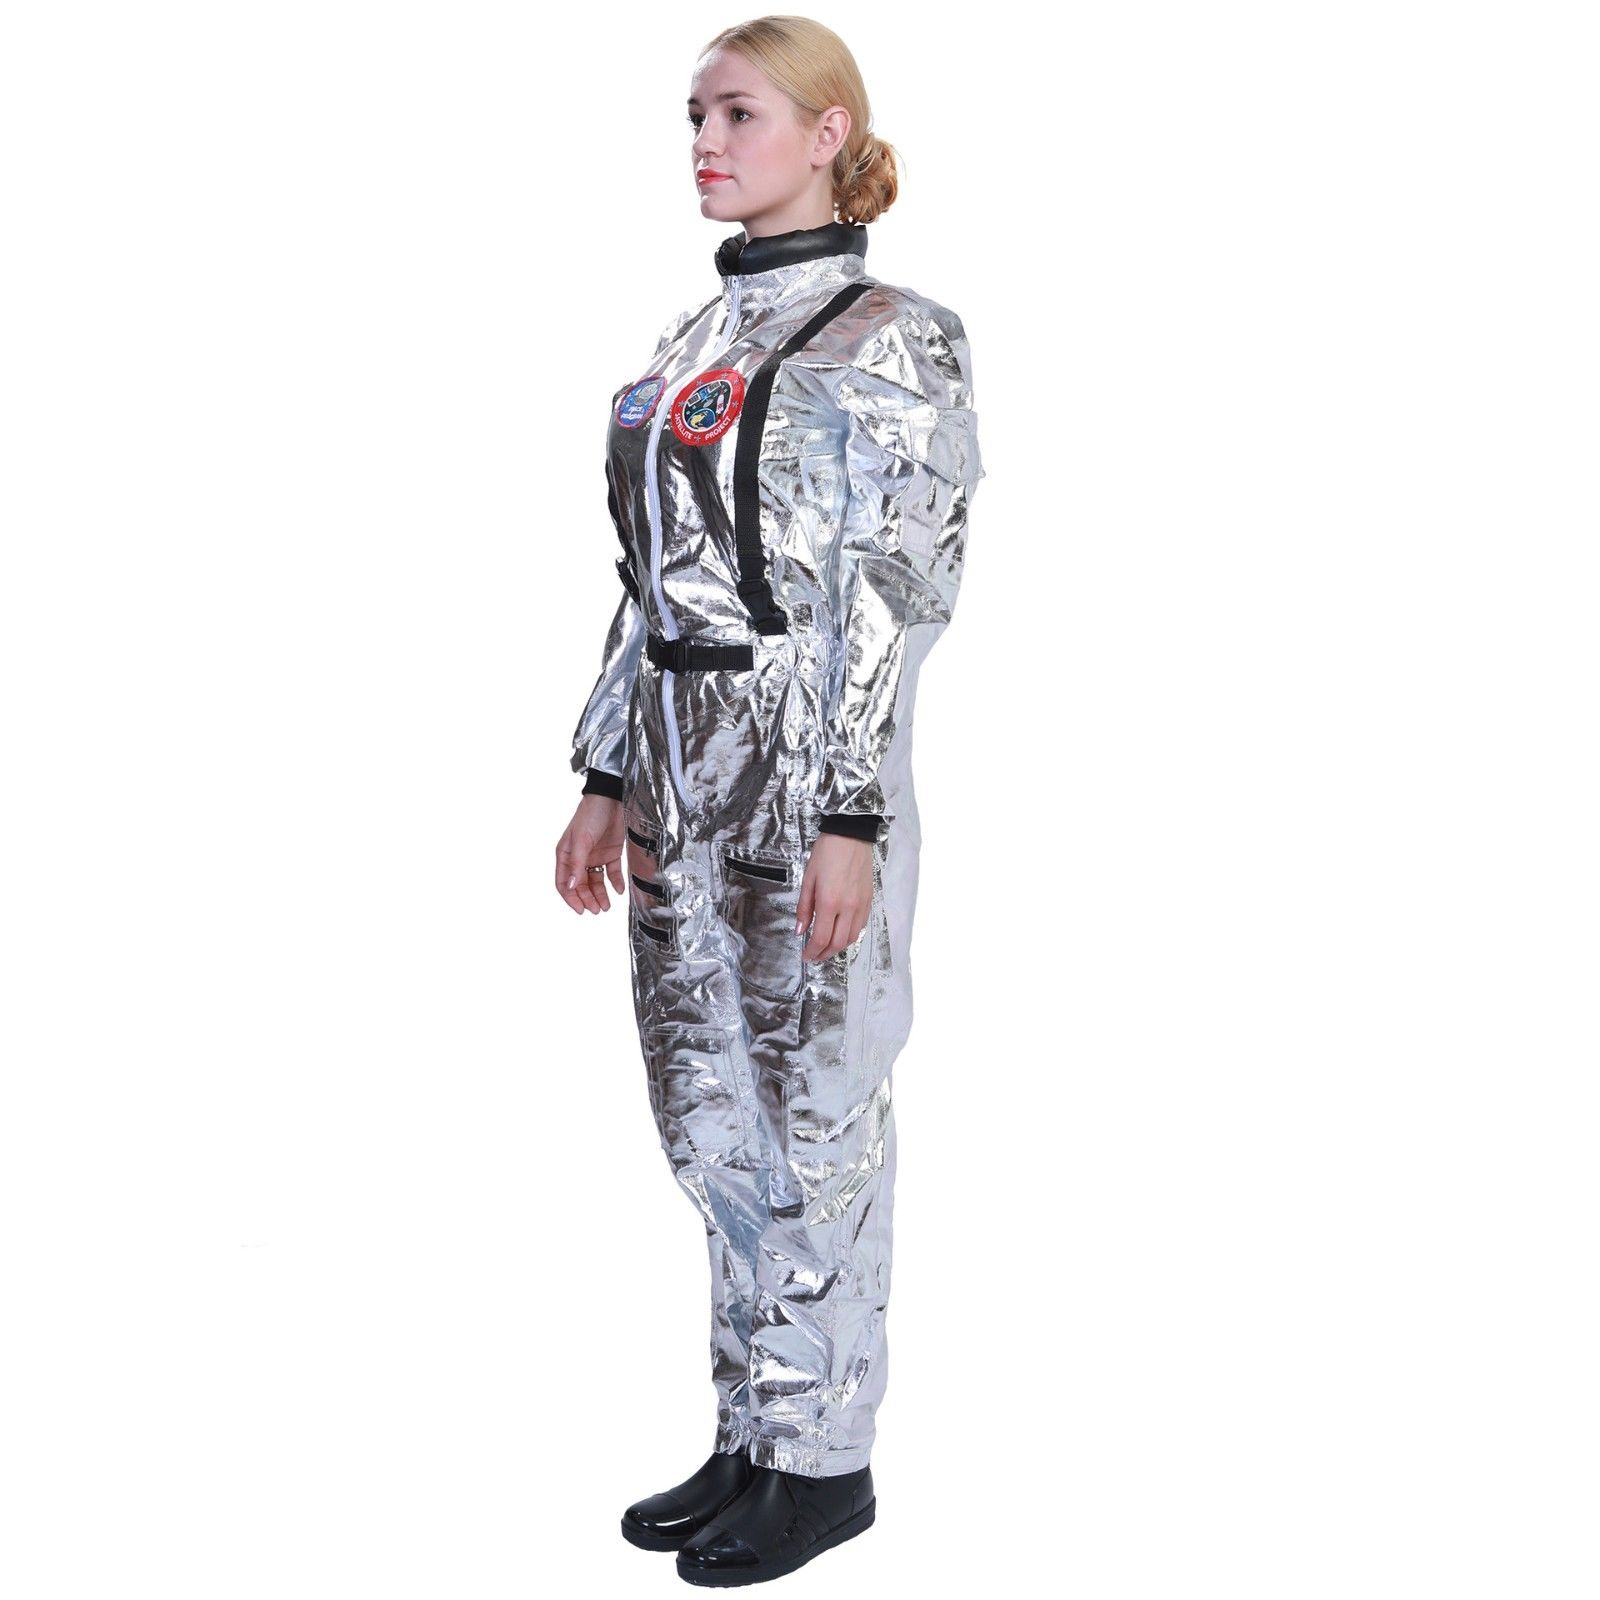 9eb7dd8d45ee Astronaut Jumpsuit Costume Cosplay Space Suit White Shuttle NASA Moon  Halloween Unisex Props Man Women Kids-in Movie   TV costumes from Novelty    Special ...